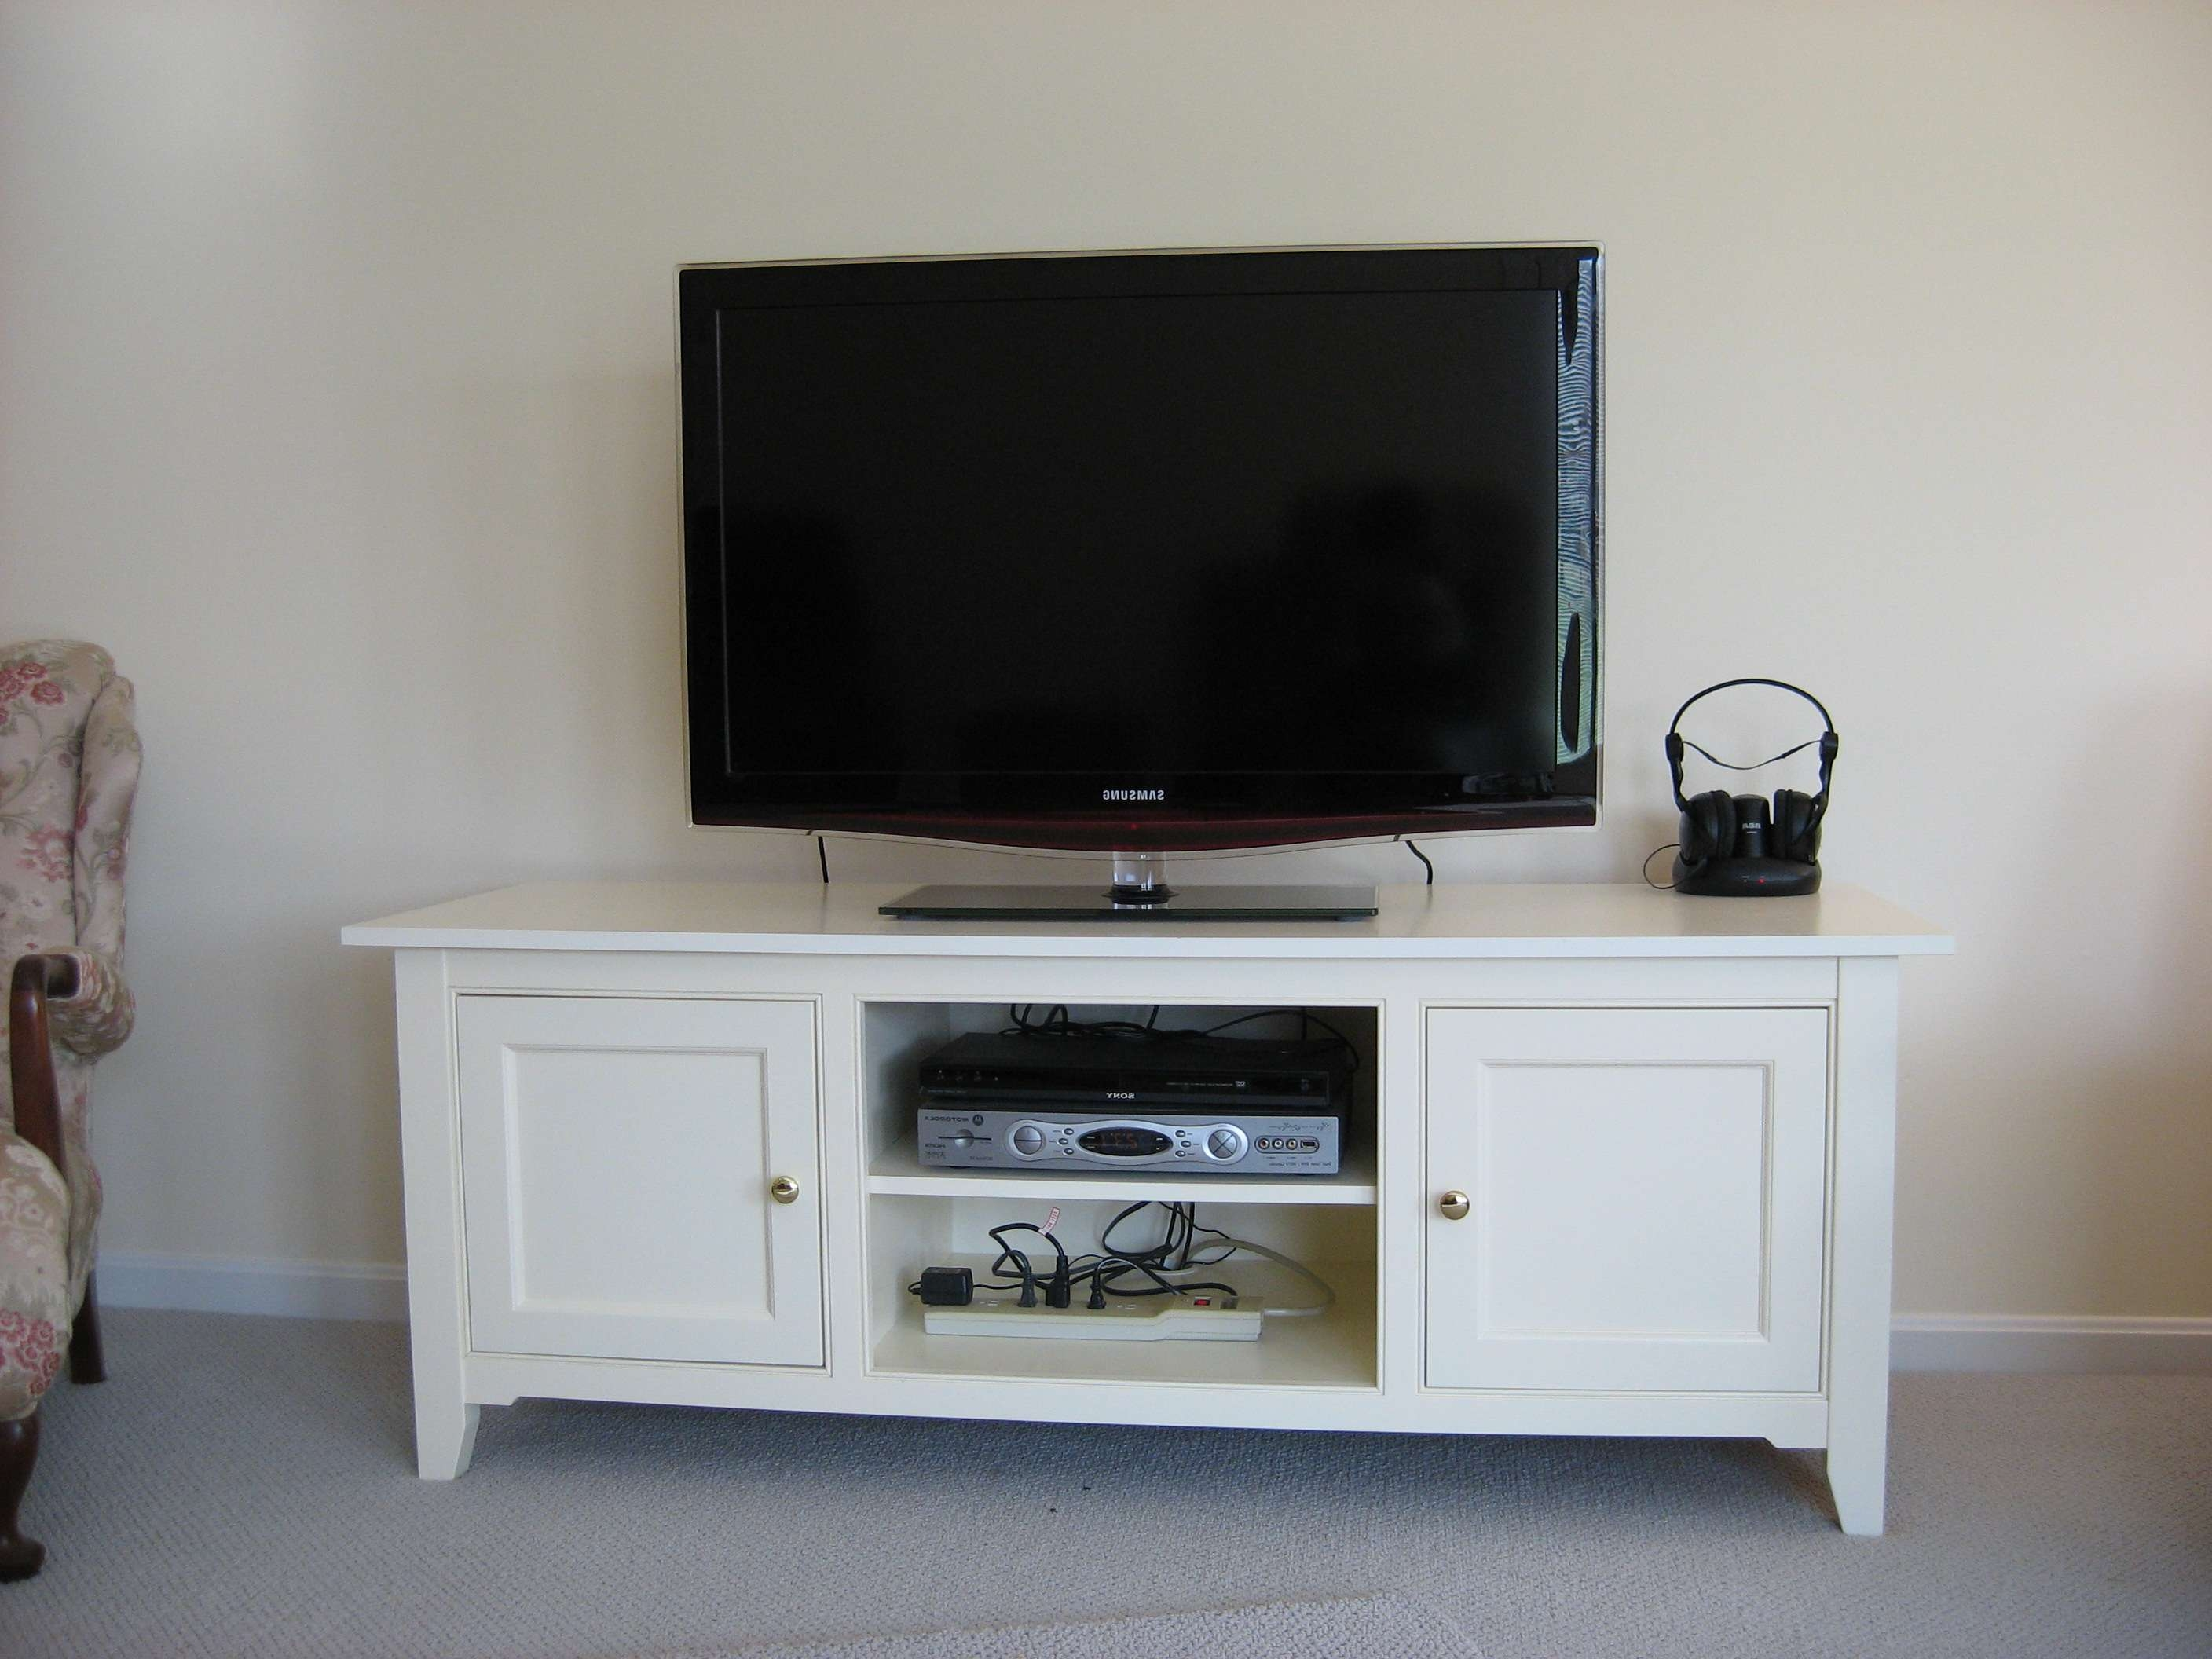 Images About Tv And Built Ins On Pinterest Corner Stands Cabinets Intended For White Painted Tv Cabinets (View 9 of 20)